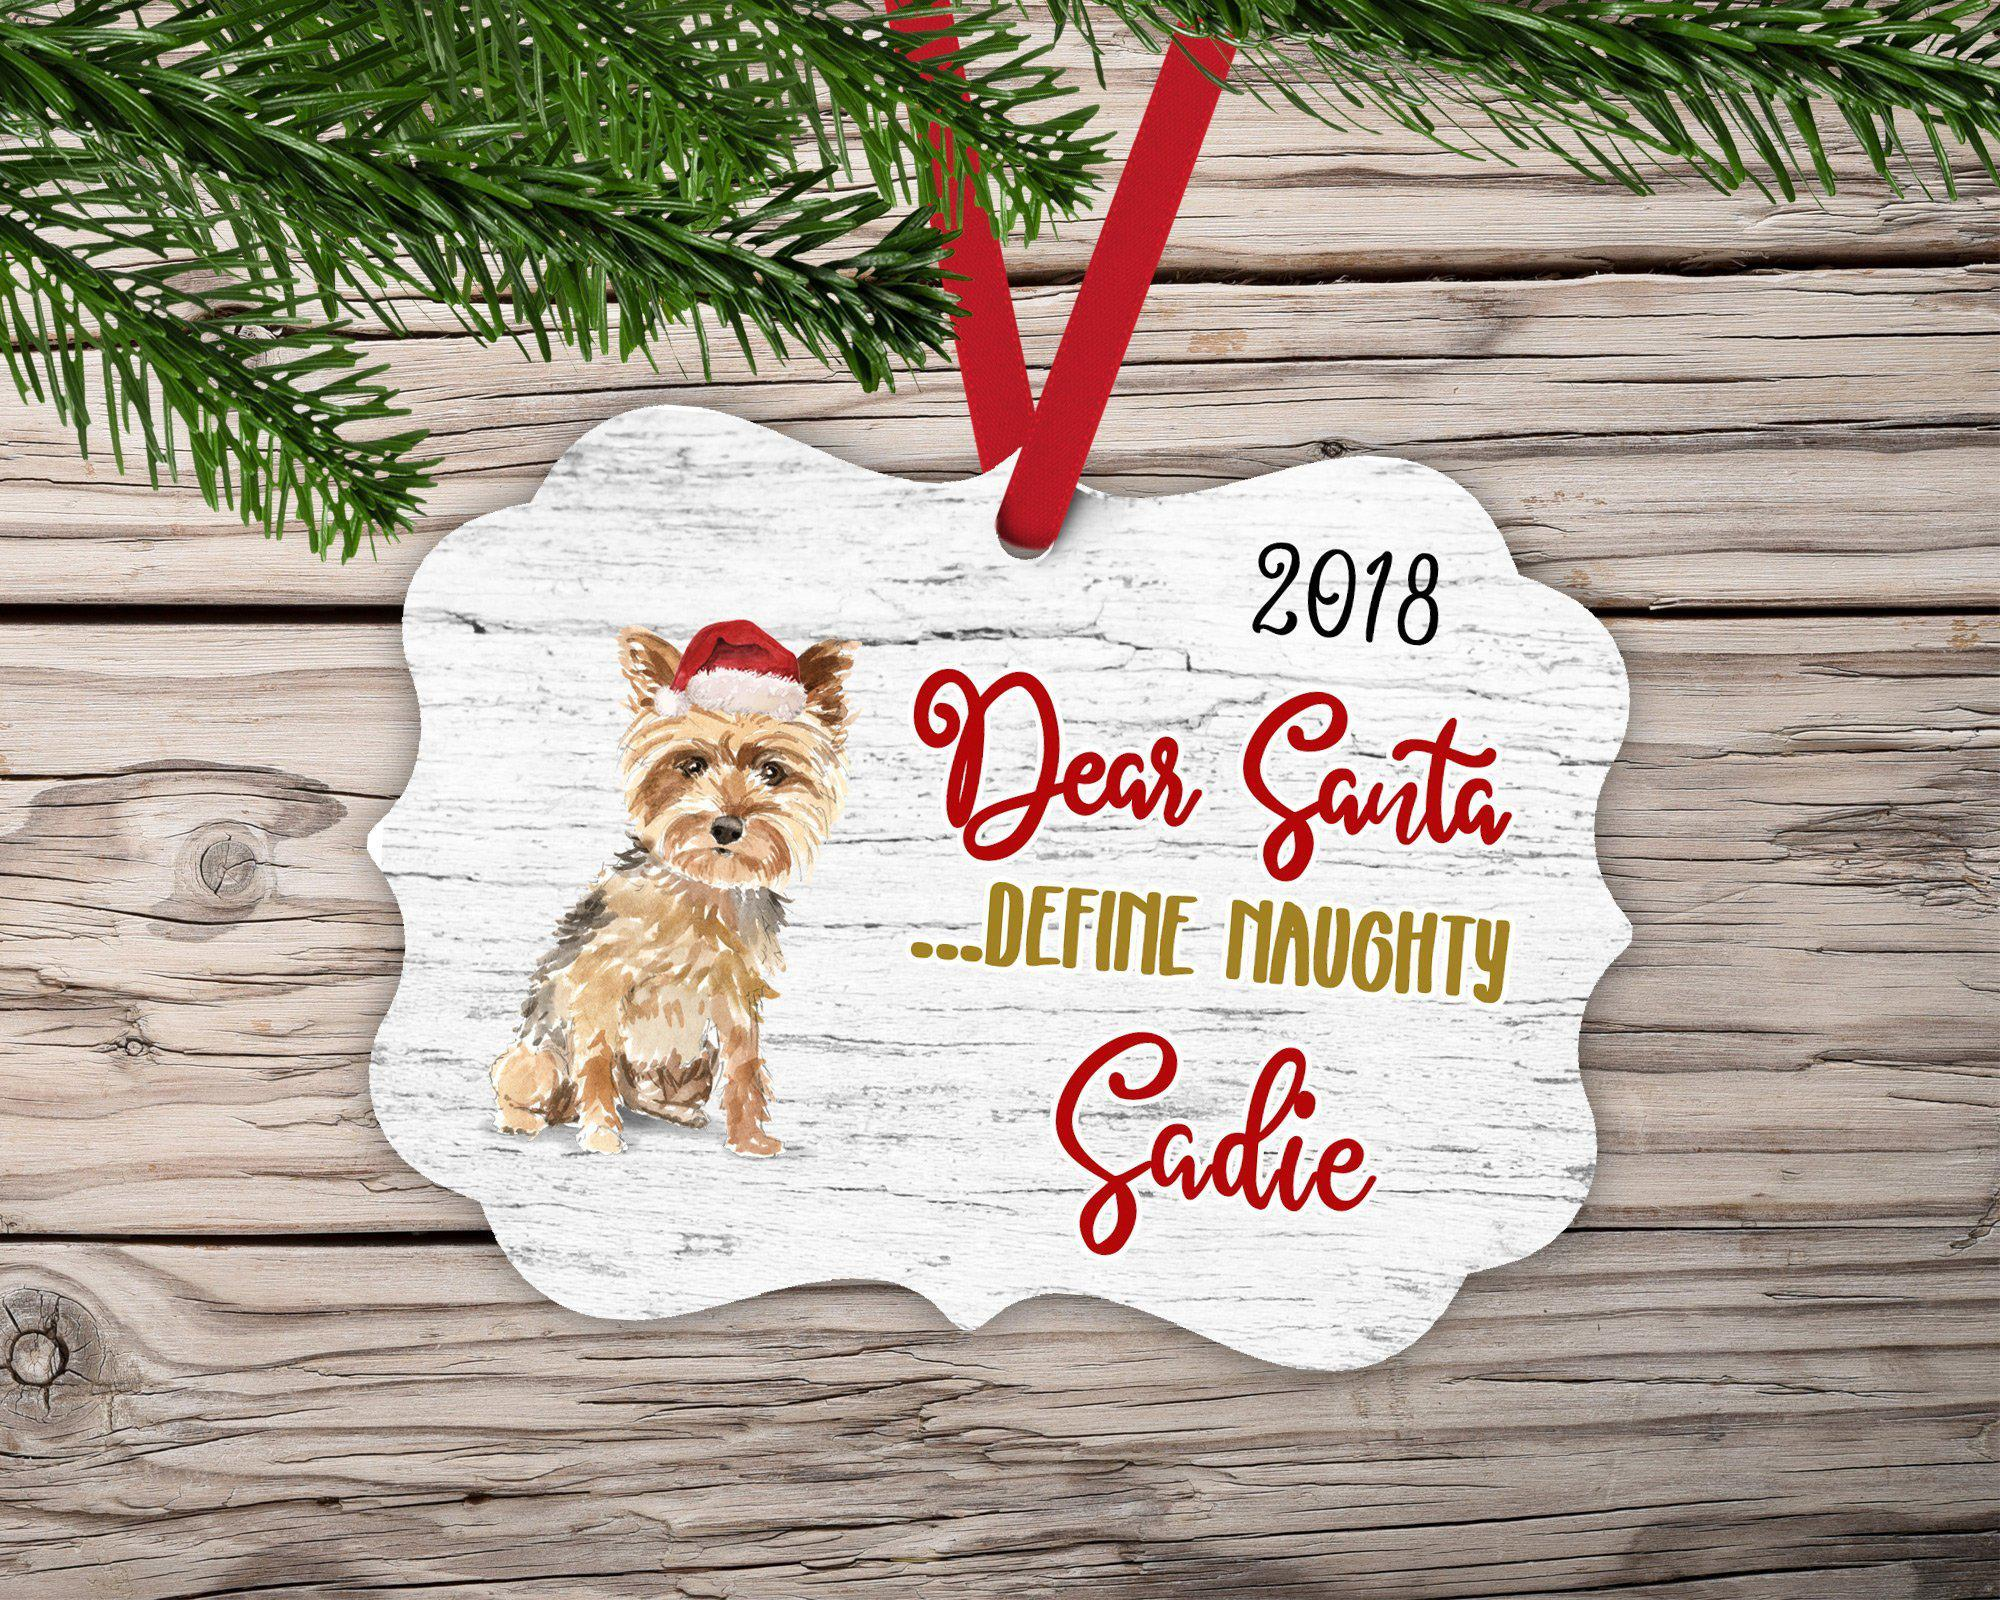 Dear Santa Yorkie Dog Ornament-Ornaments-Maddie & Co.